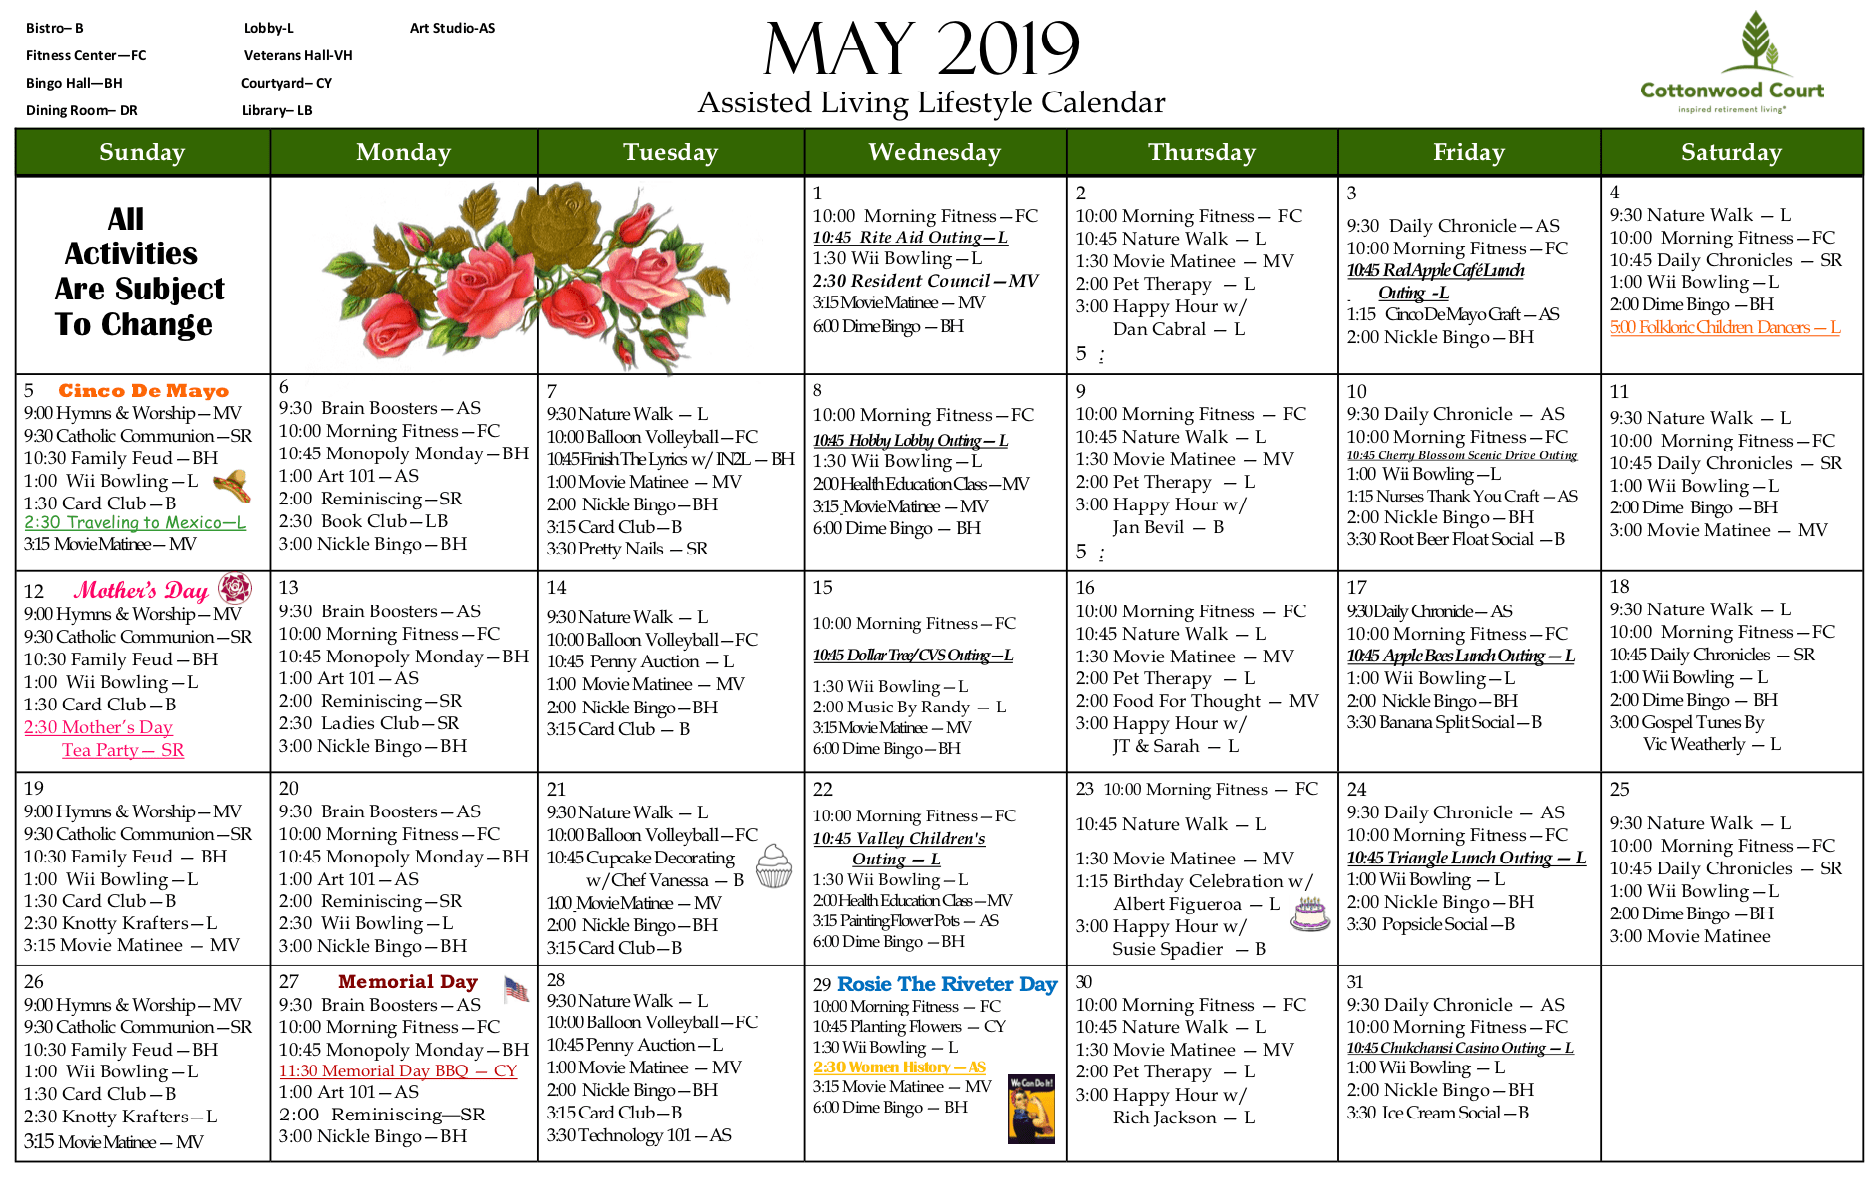 Placeholder calendar for Westmont Village in Riverside, California